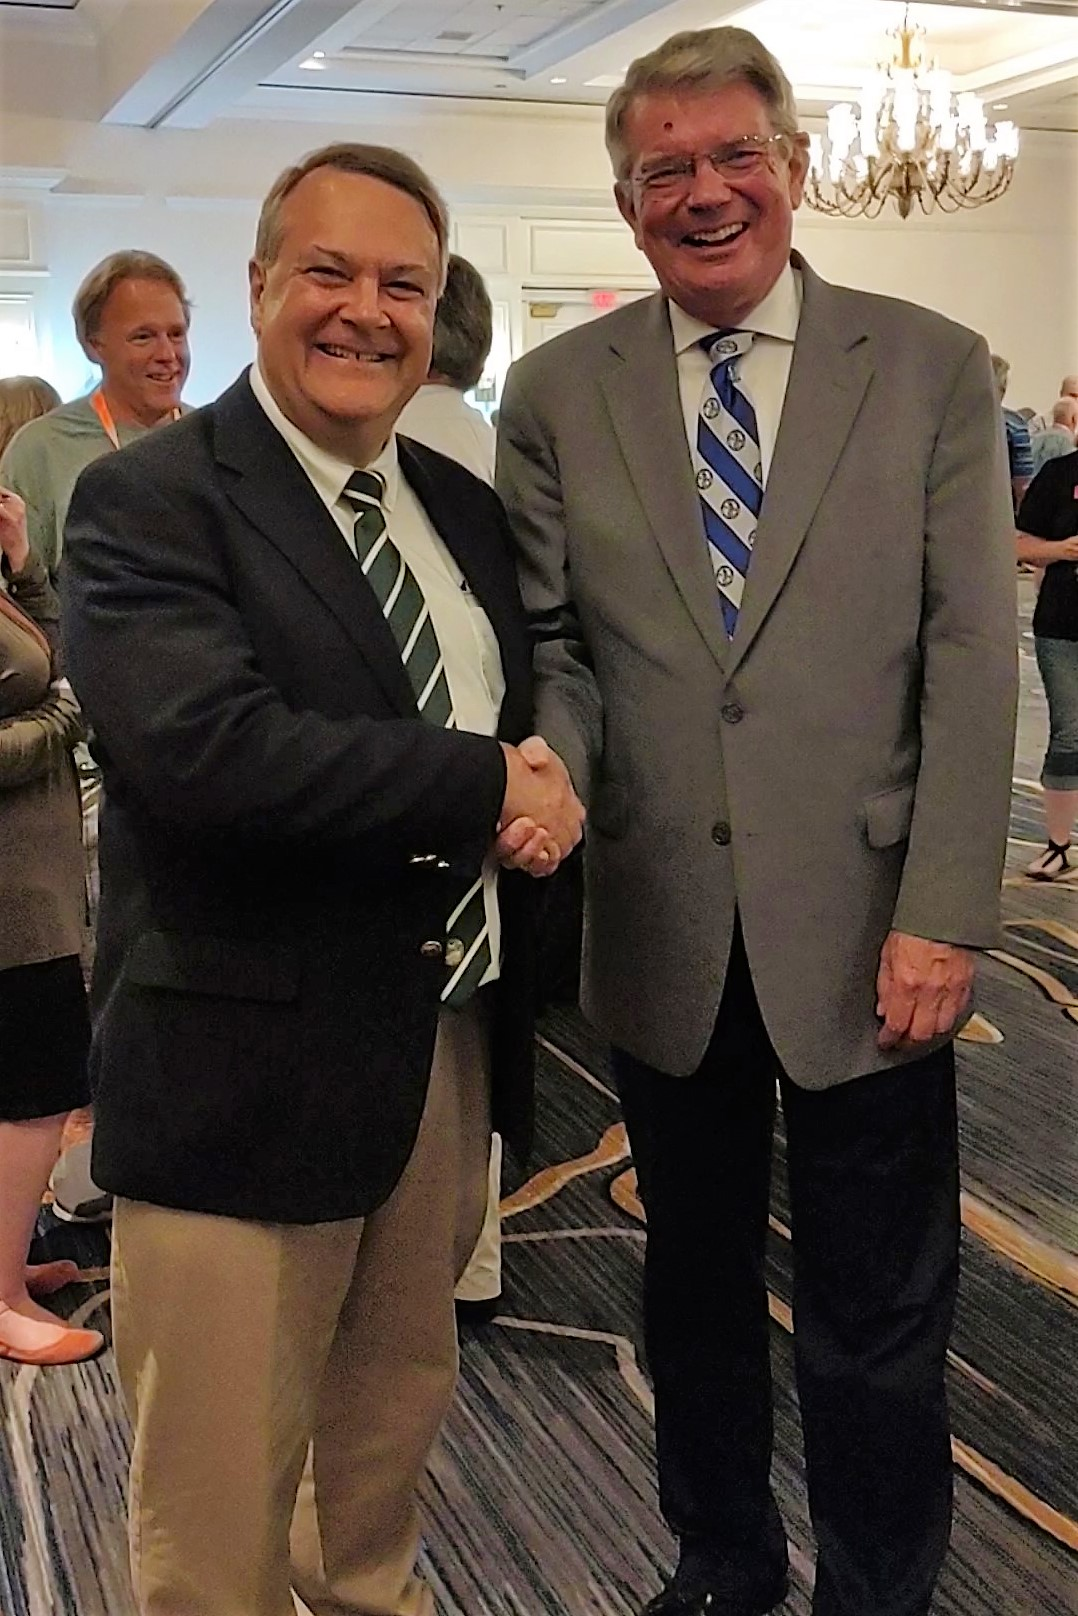 Dr. Rast (left) and Dr. Meyer (right) shake hands at the joint seminary alumni reception at the 2019 Synod Convention in Tampa, FL.